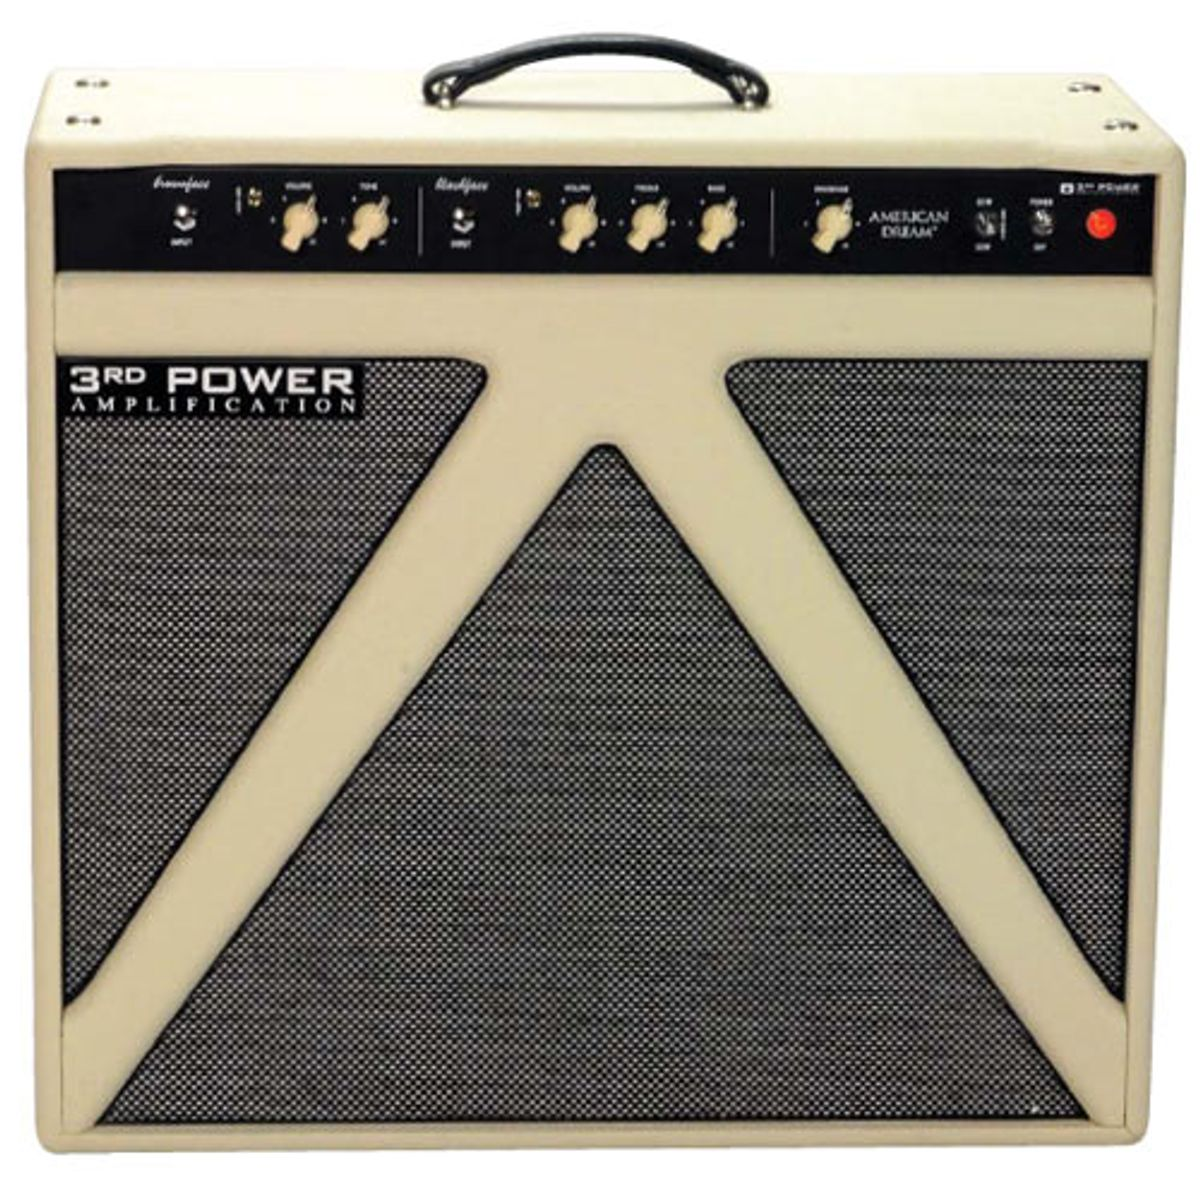 3rd Power Amplification American Dream 1x12 Combo Amp Review